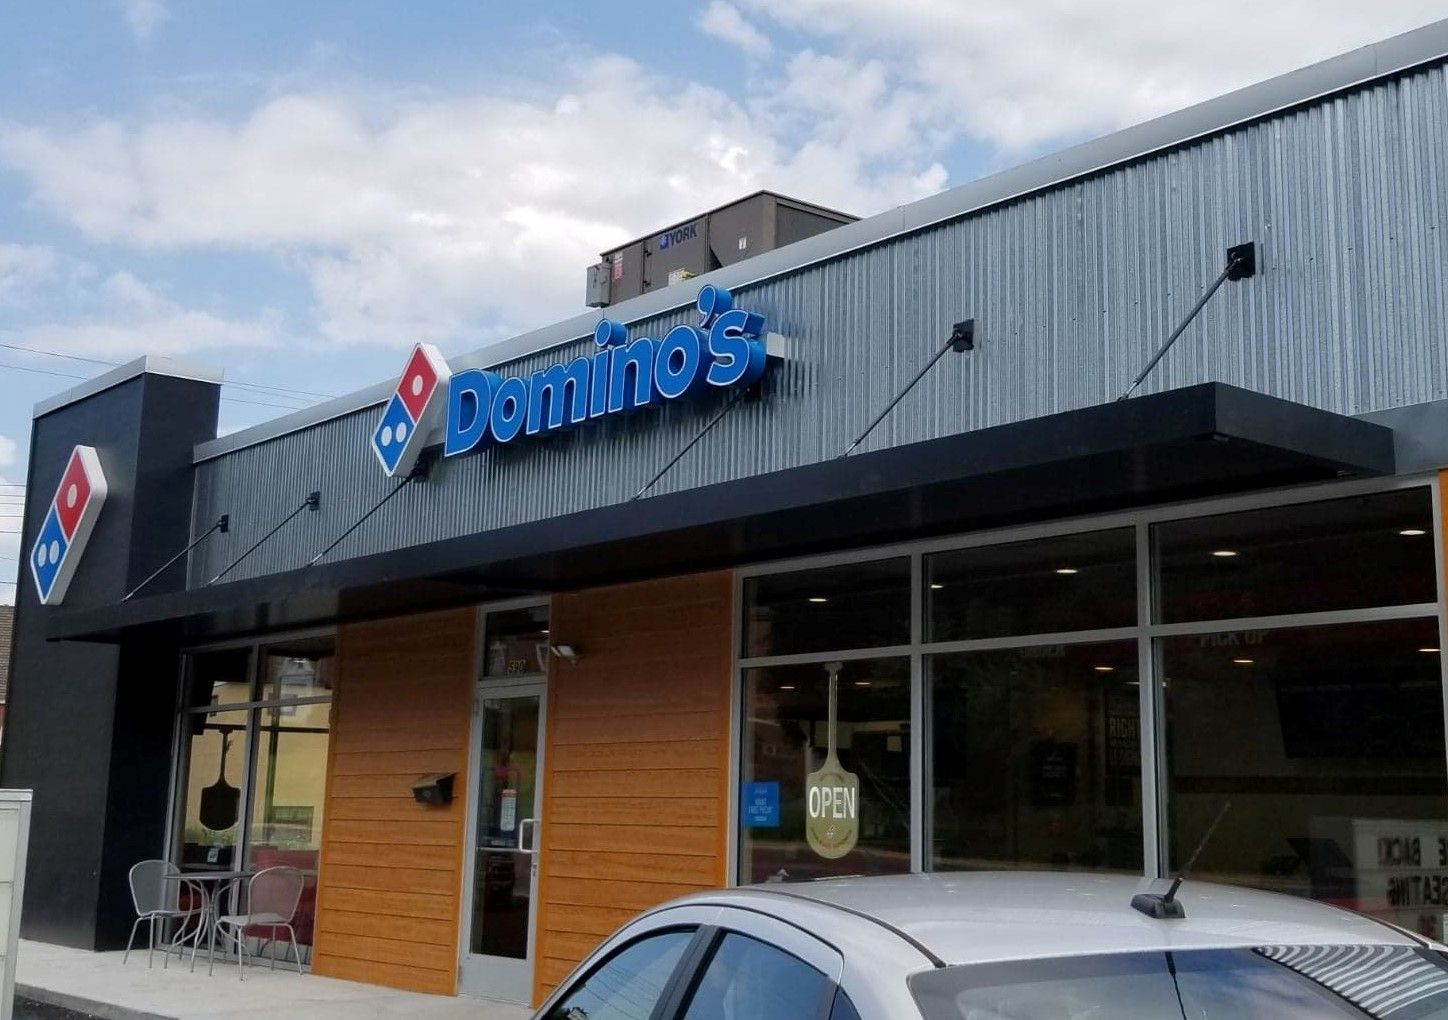 Masa Extrudeck Canopies At Domino S In Keyser Wv Architecture Create Design Build Americanmade Pizza Westvirginia Awning Canopy Custom Canopy Canopy